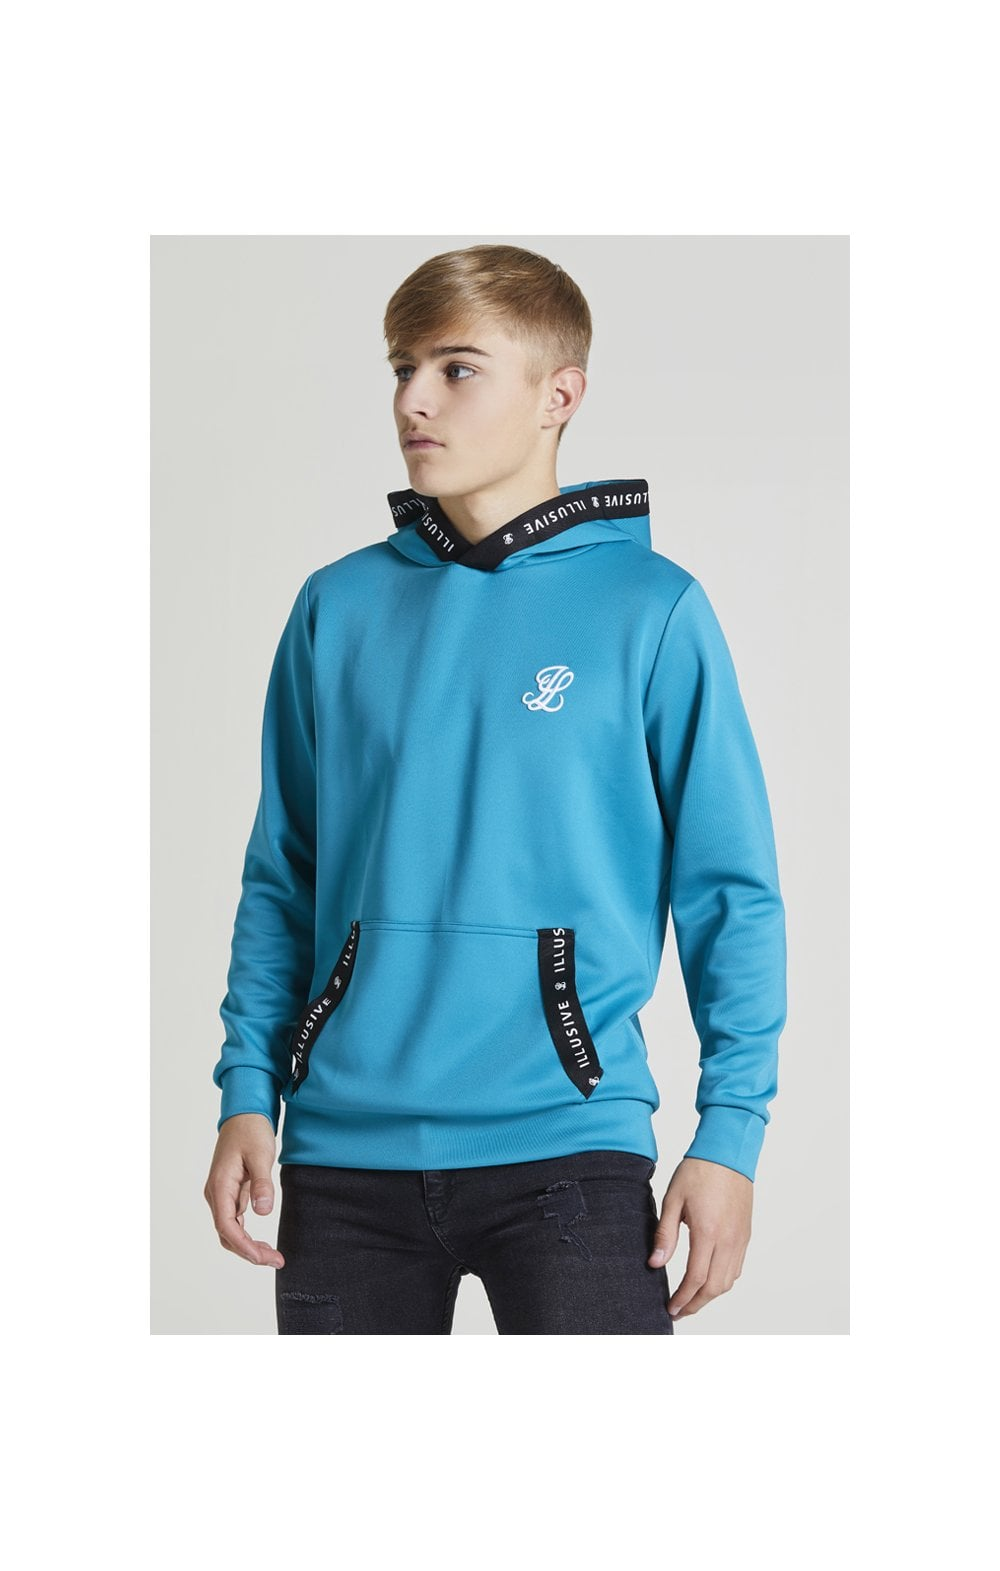 Illusive London Taped Overhead Hoodie - Teal Green (2)